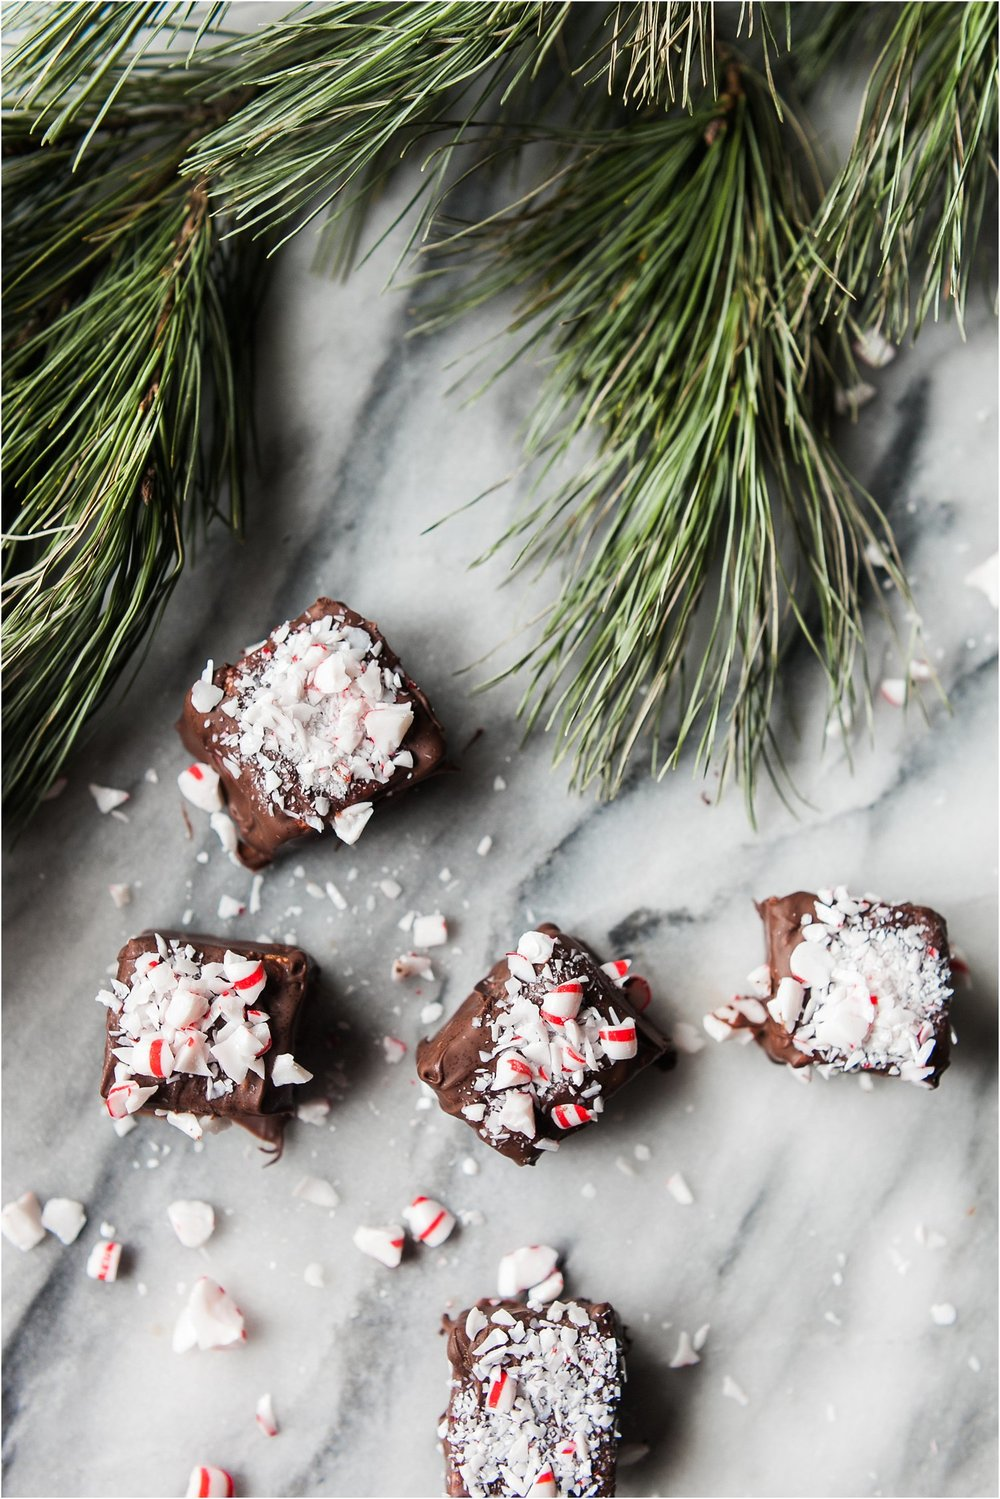 Homemade Chocolate & Peppermint Covered Marshmallows | Feast & Dwell